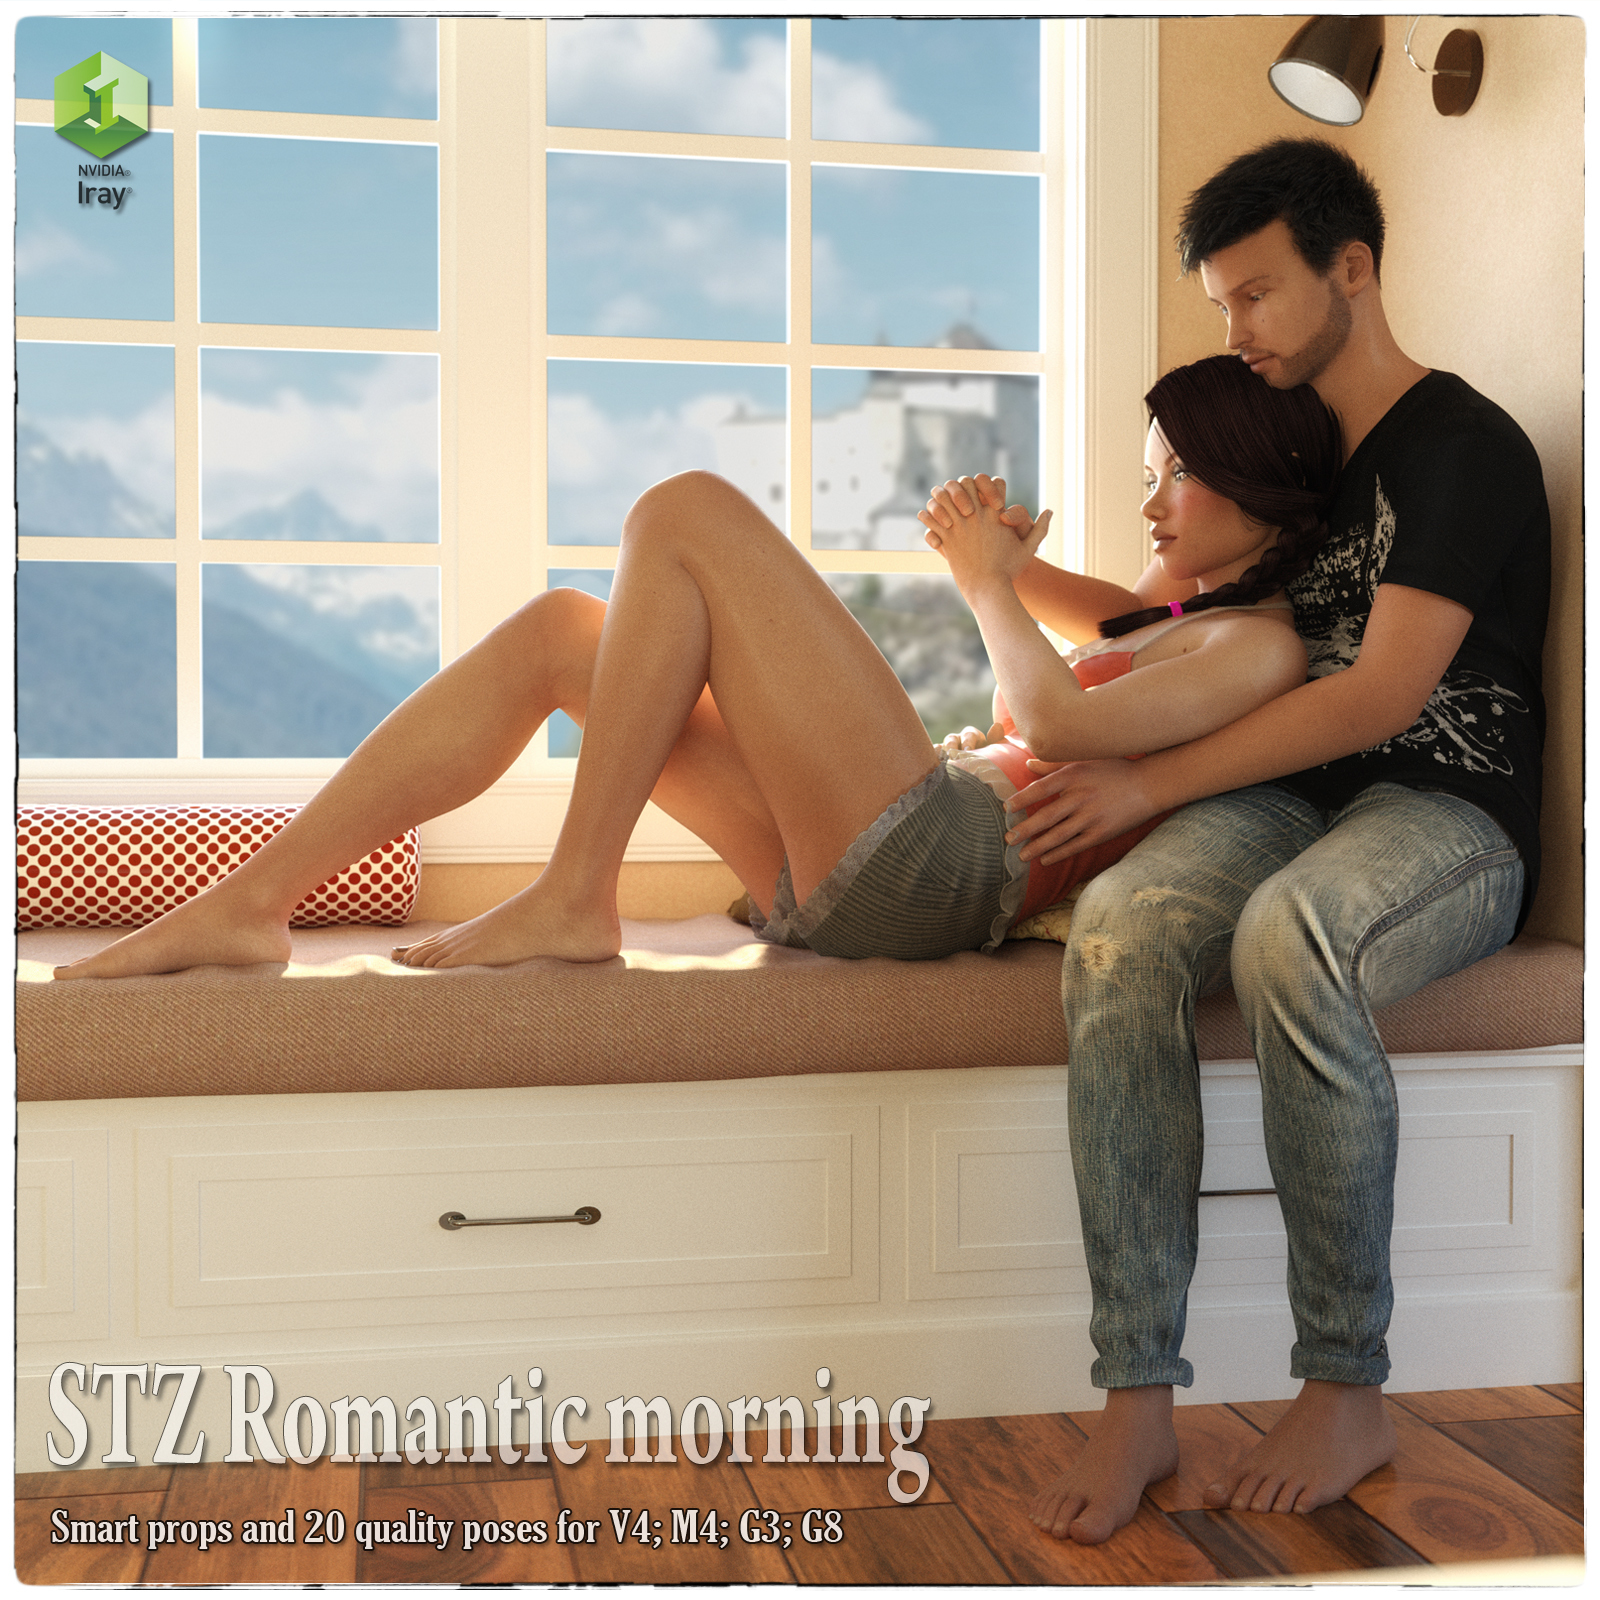 STZ Romantic morning